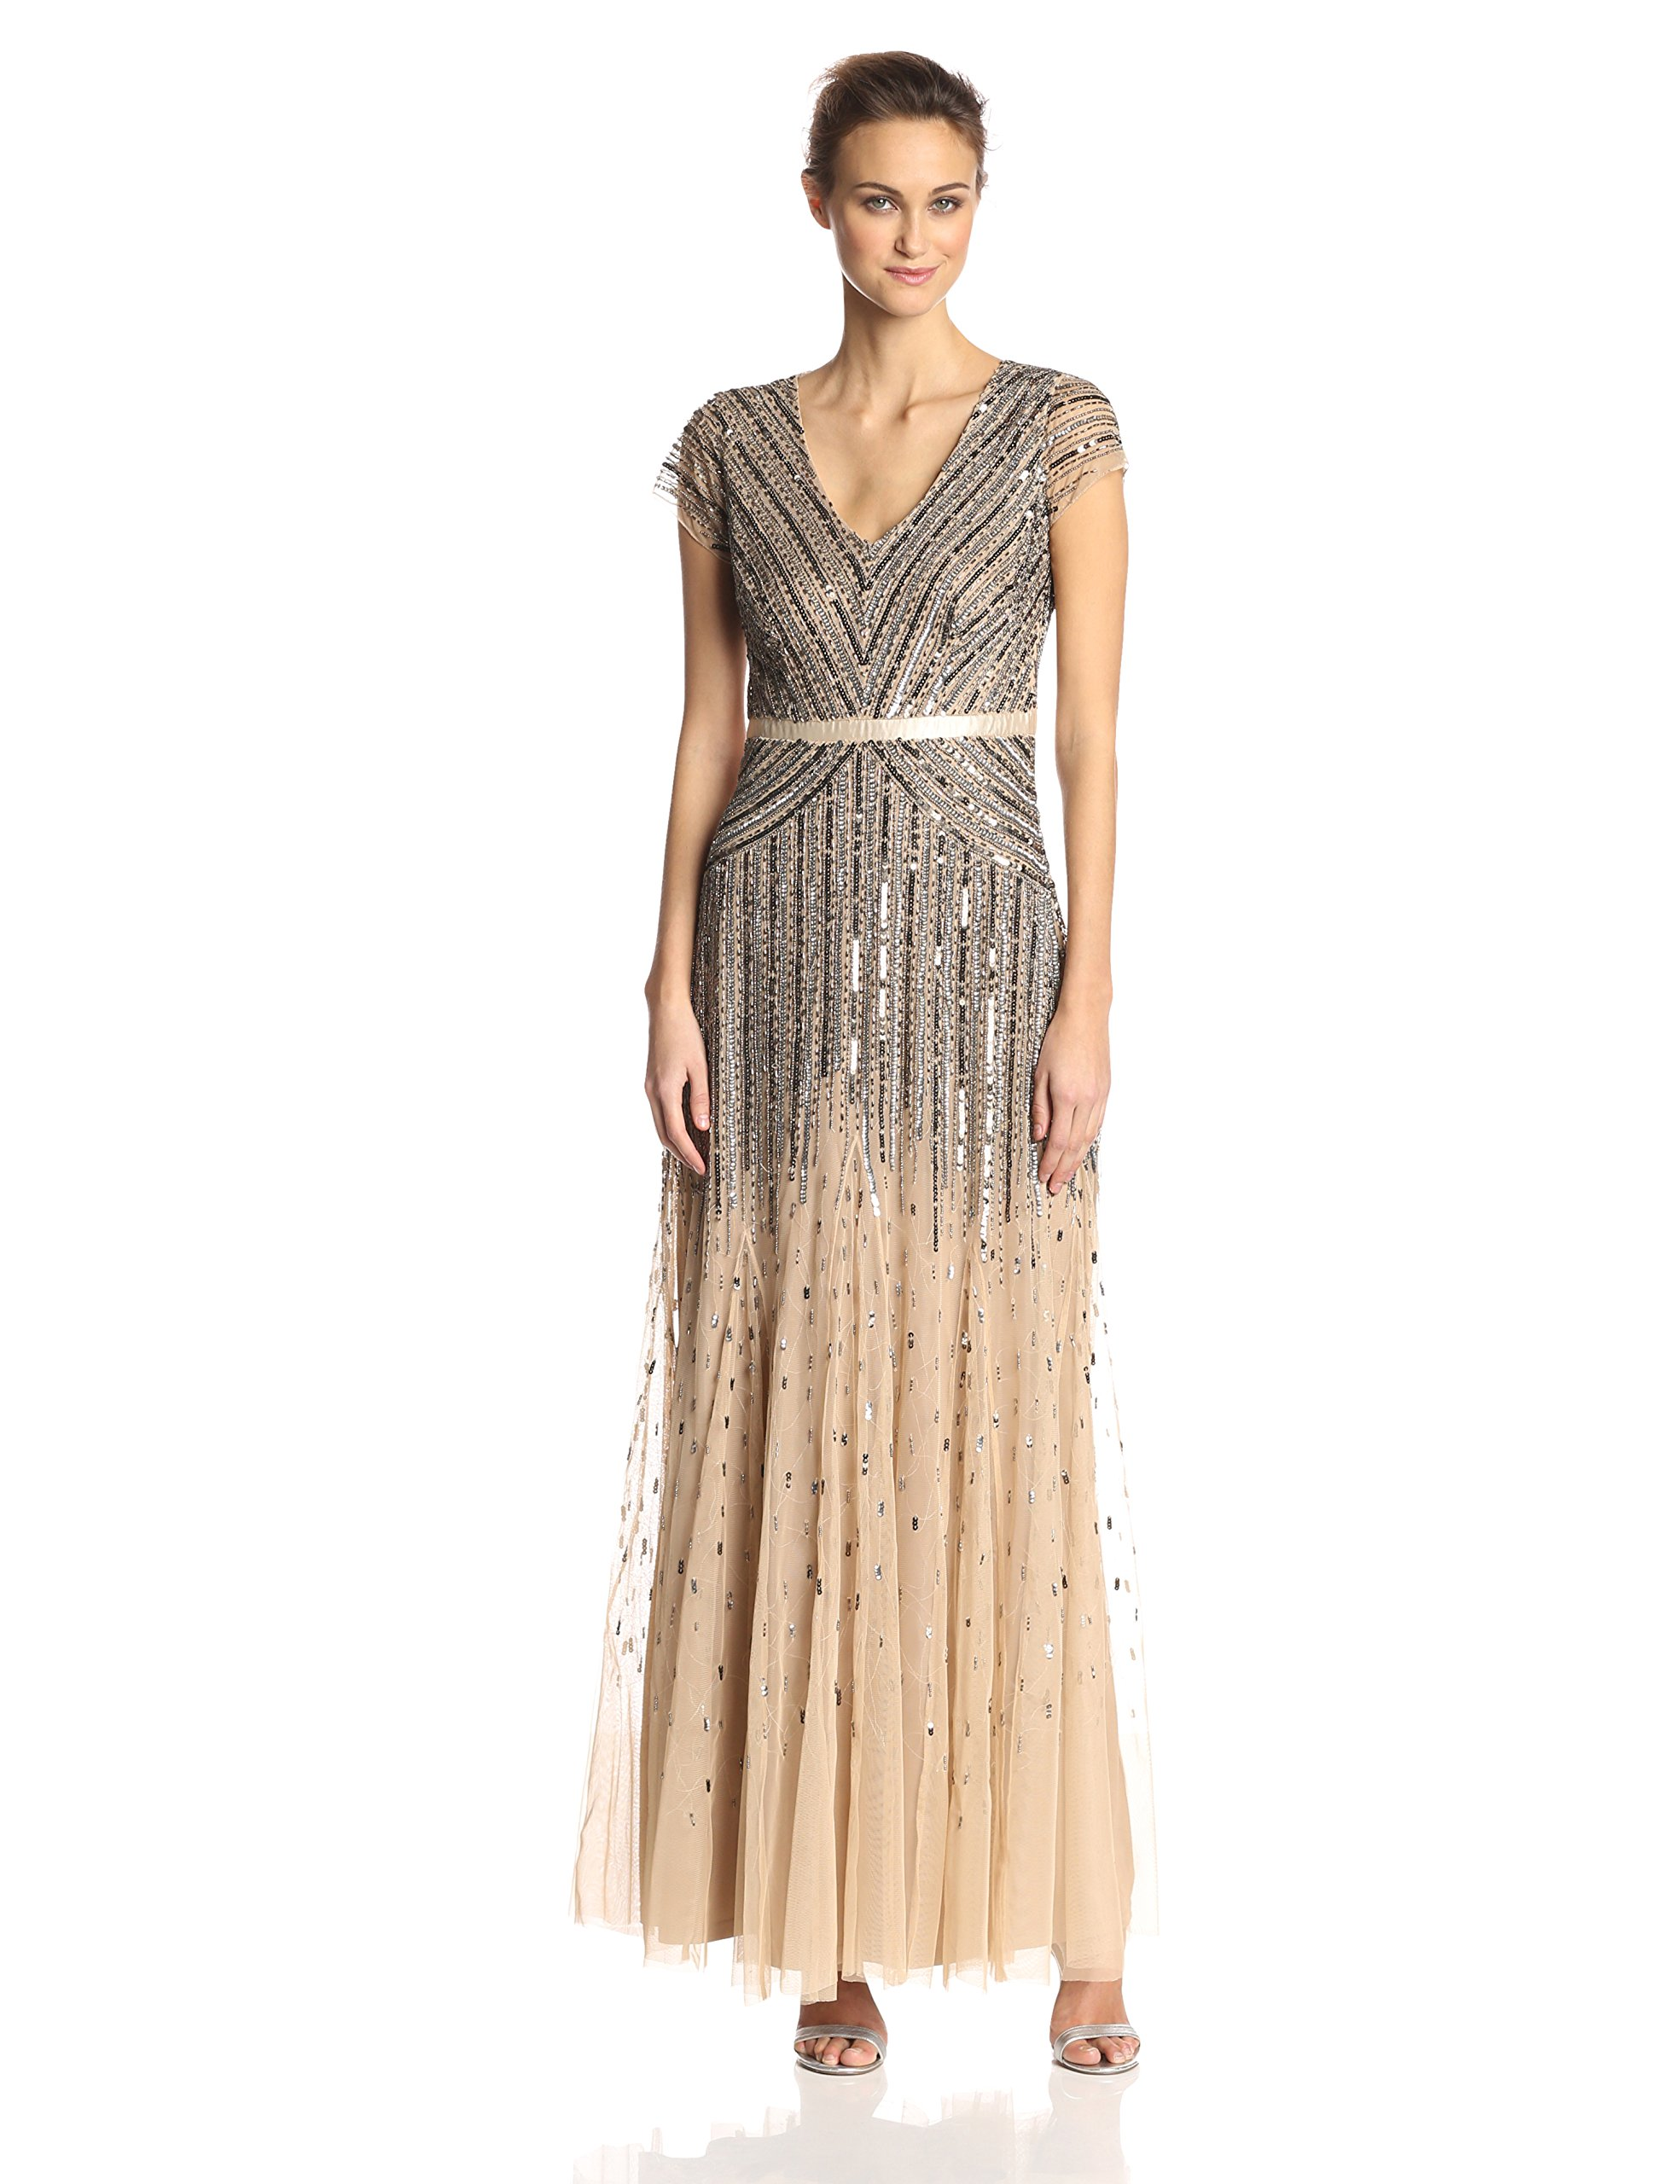 Adrianna Papell Women's Long Beaded V-Neck Dress With Cap Sleeves and Waistband, Nude, 8